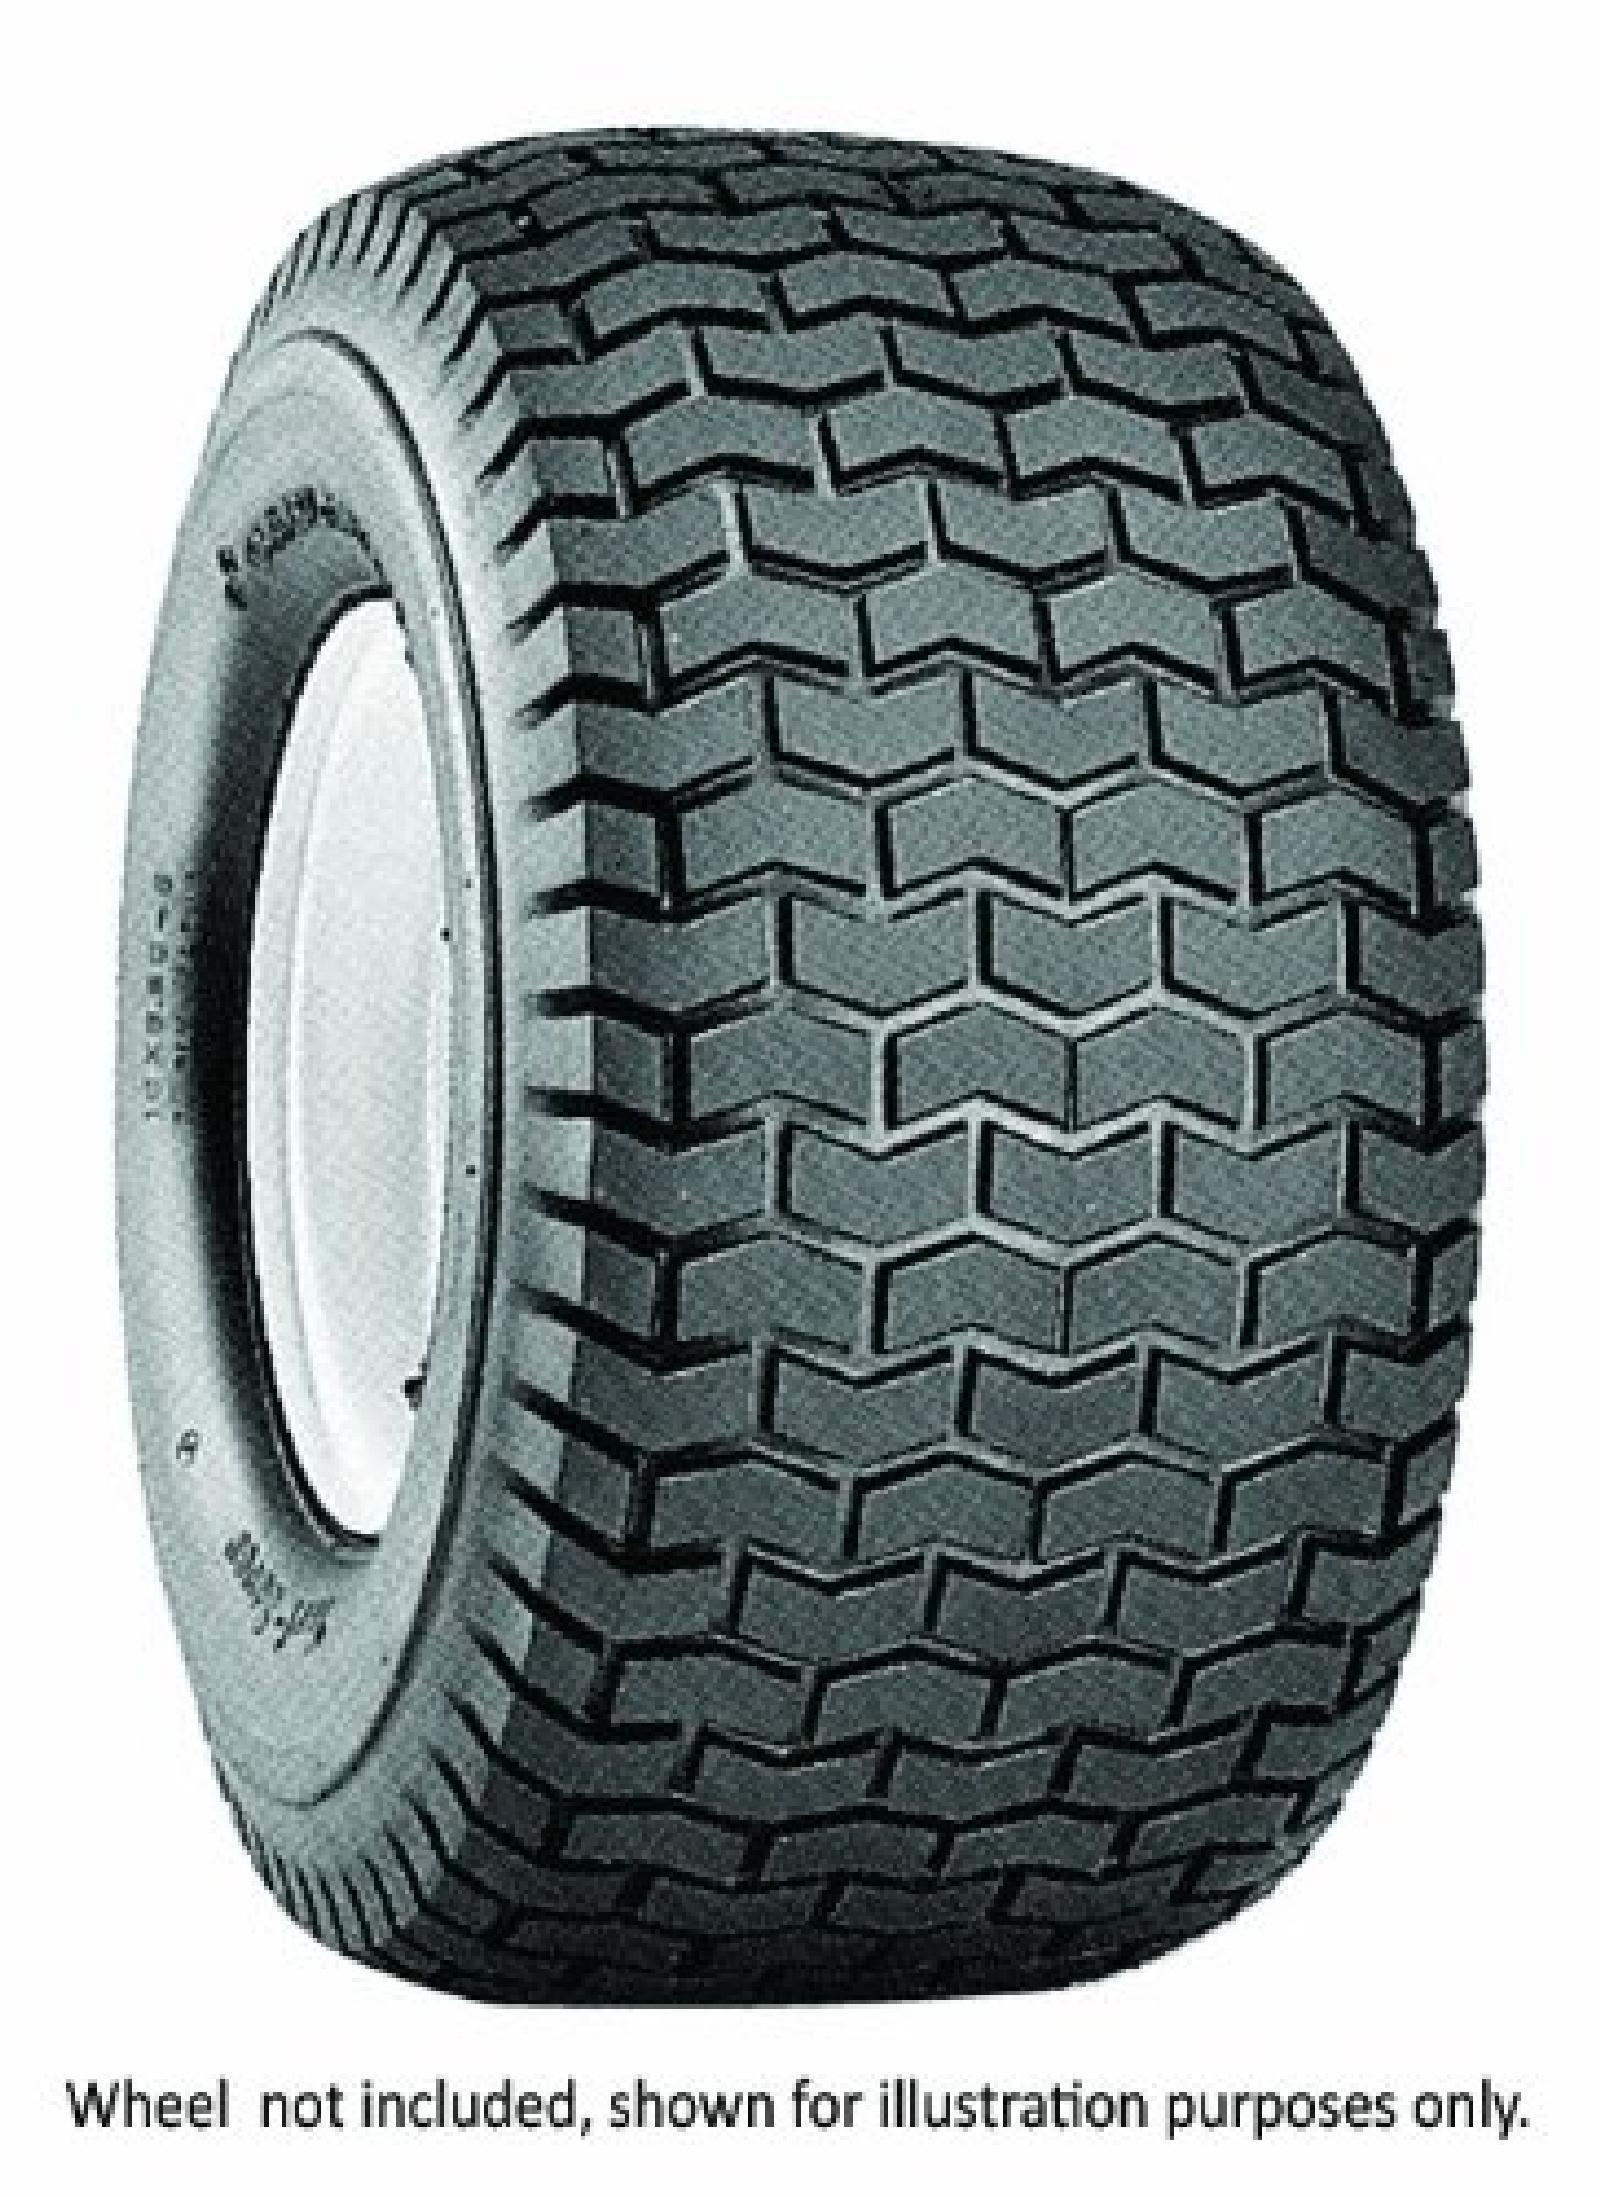 CARLISLE TIRE 13X500 6 4P part# 70-314 by Oregon